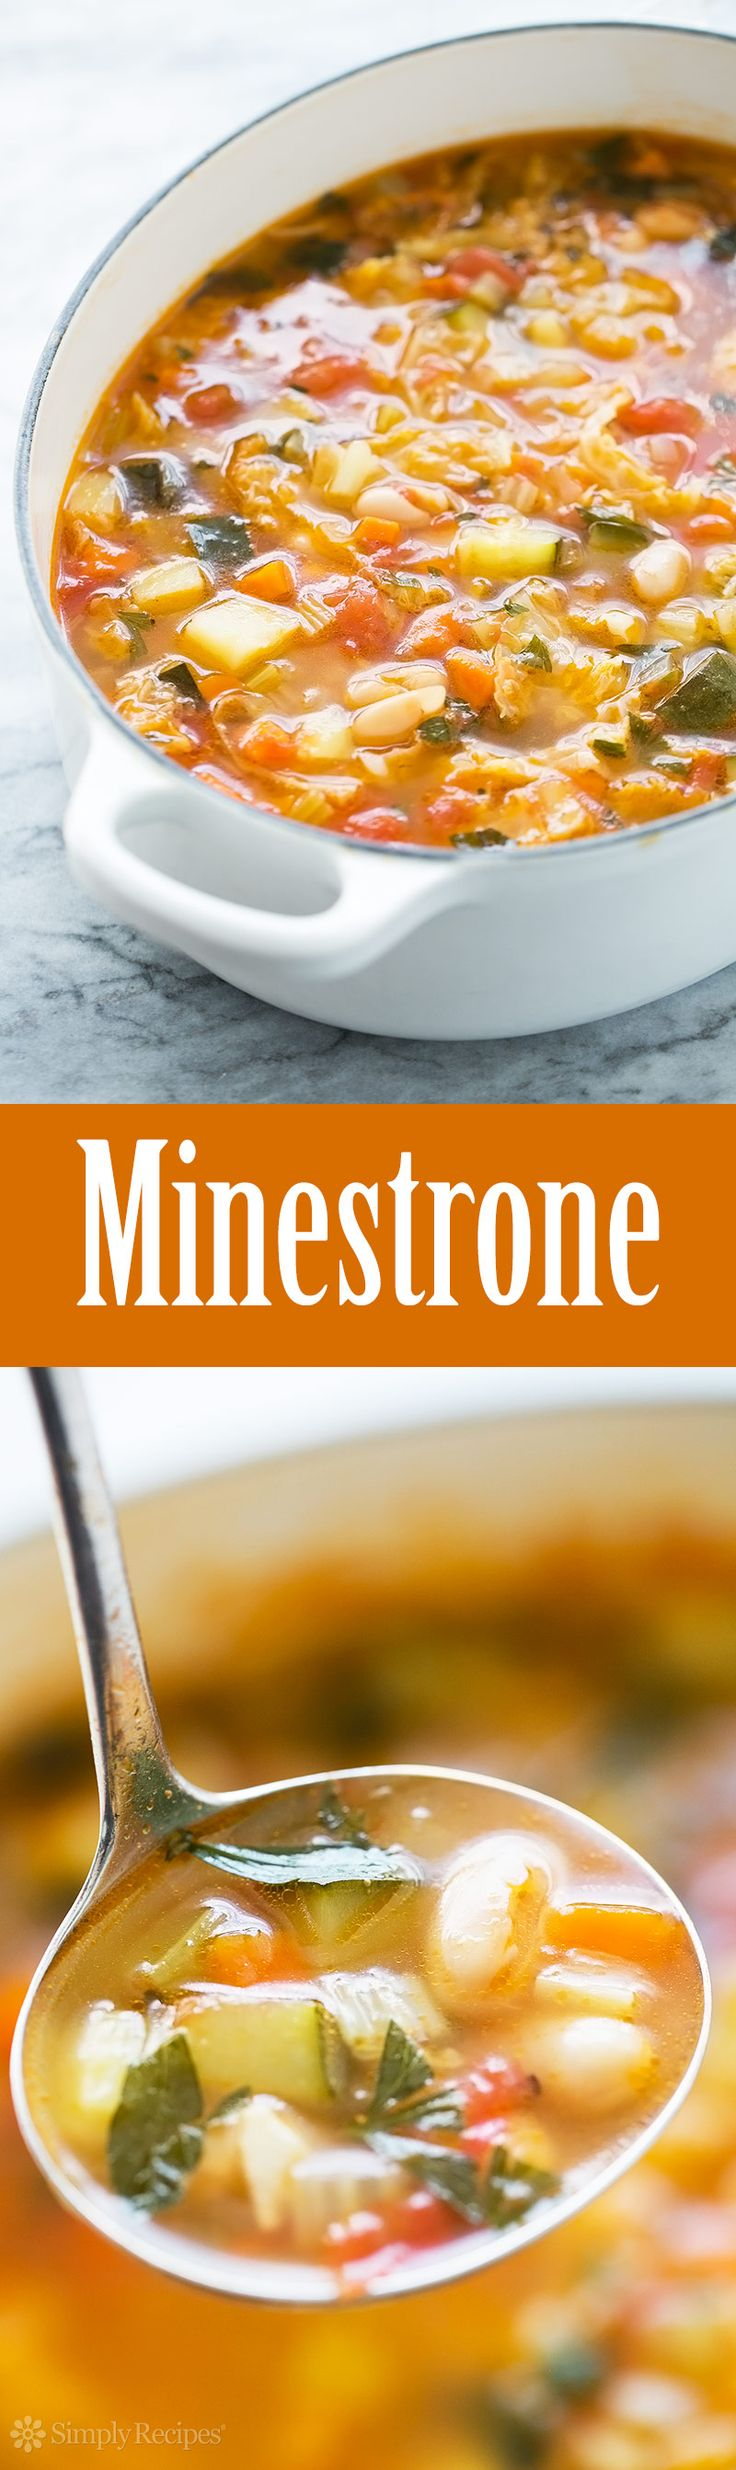 Minestrone Soup ~ Minestrone soup with cannellini beans, chicken stock, cabbage, potato, zucchini, carrots, plum tomatoes, and Parmesan cheese. ~ SimplyRecipes.com